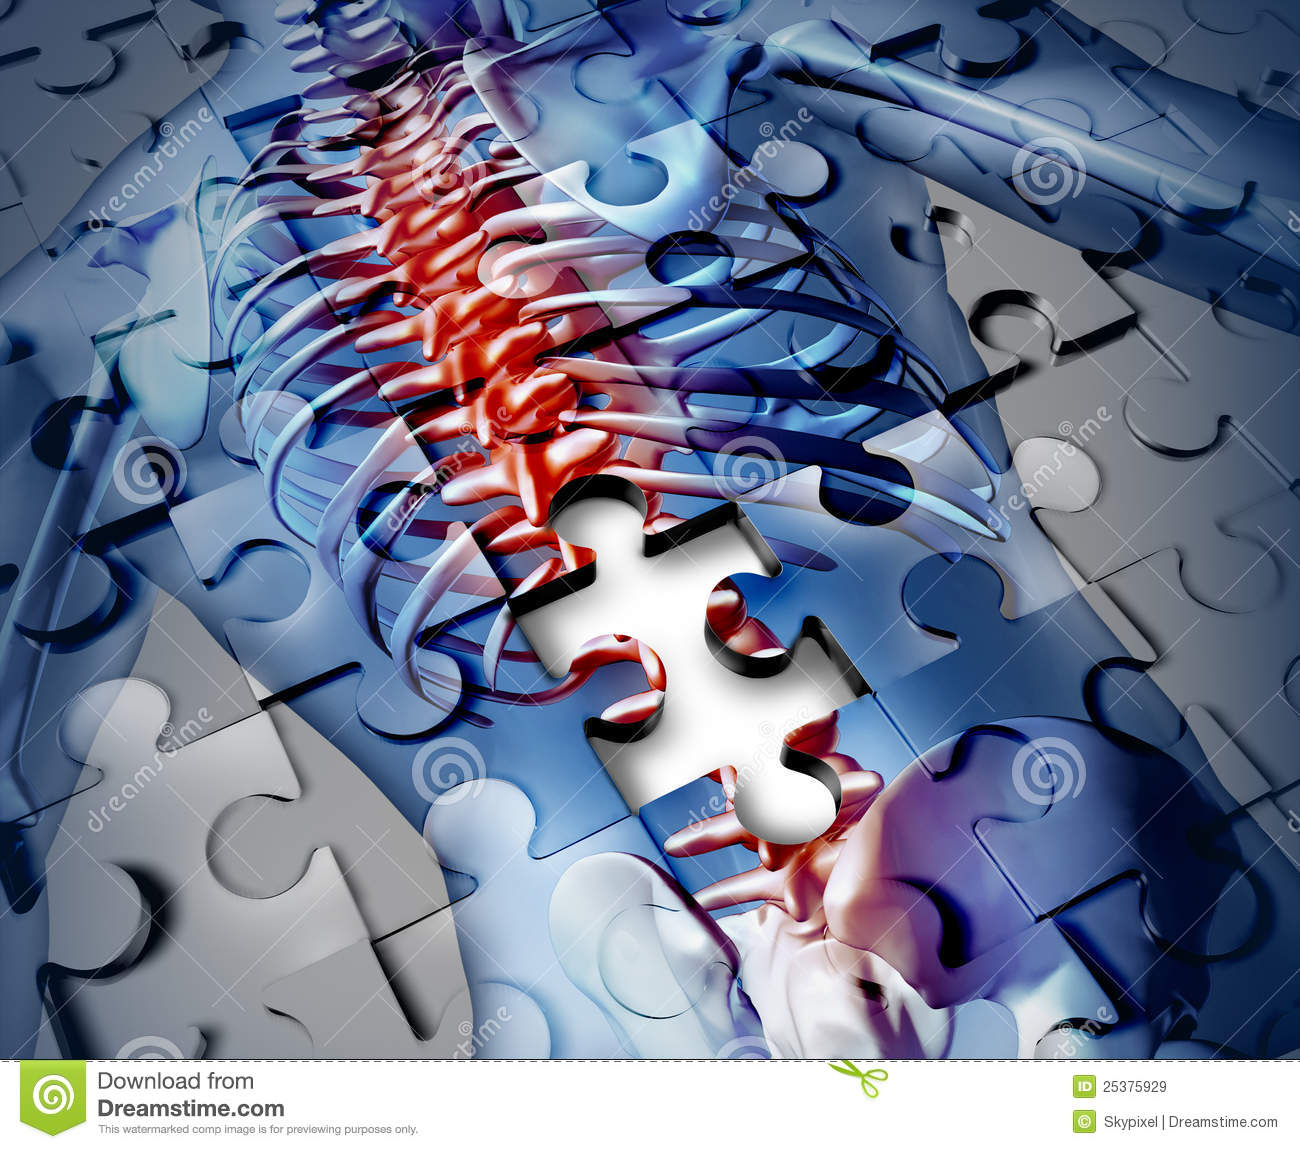 hight resolution of human back disease medical concept with a jigsaw puzzle texture and a piece missing as a broken skeleton anatomy and a symbol of the spine and joint pain